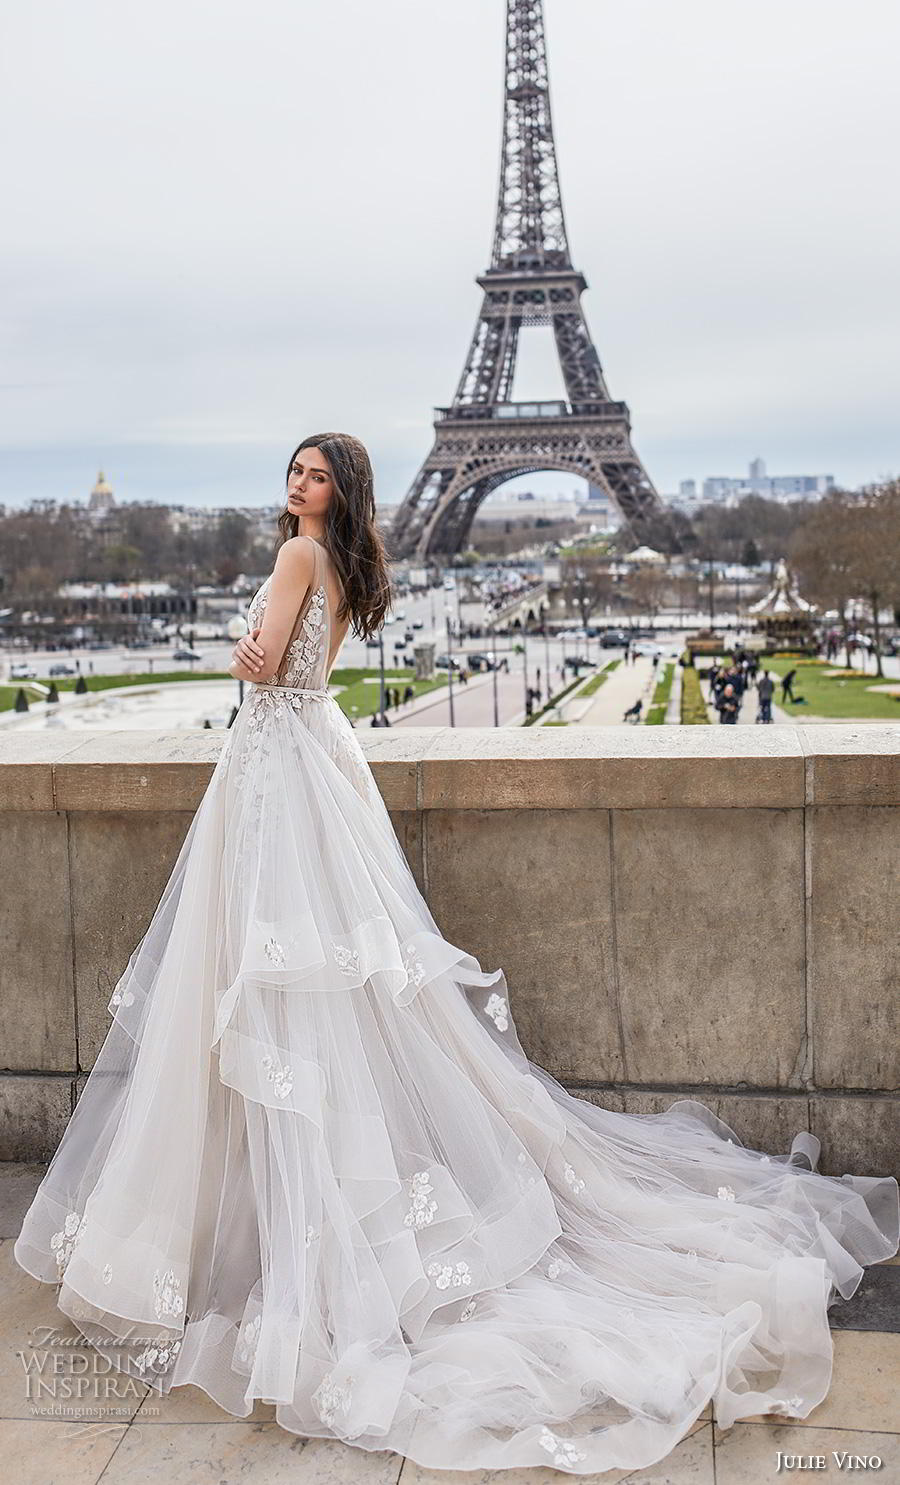 julie vino 2019 paris bridal sleeveless deep v neck heavily embellished bodice tiered skirt romantic soft a  line wedding dress backless v back chapel train (2) bv